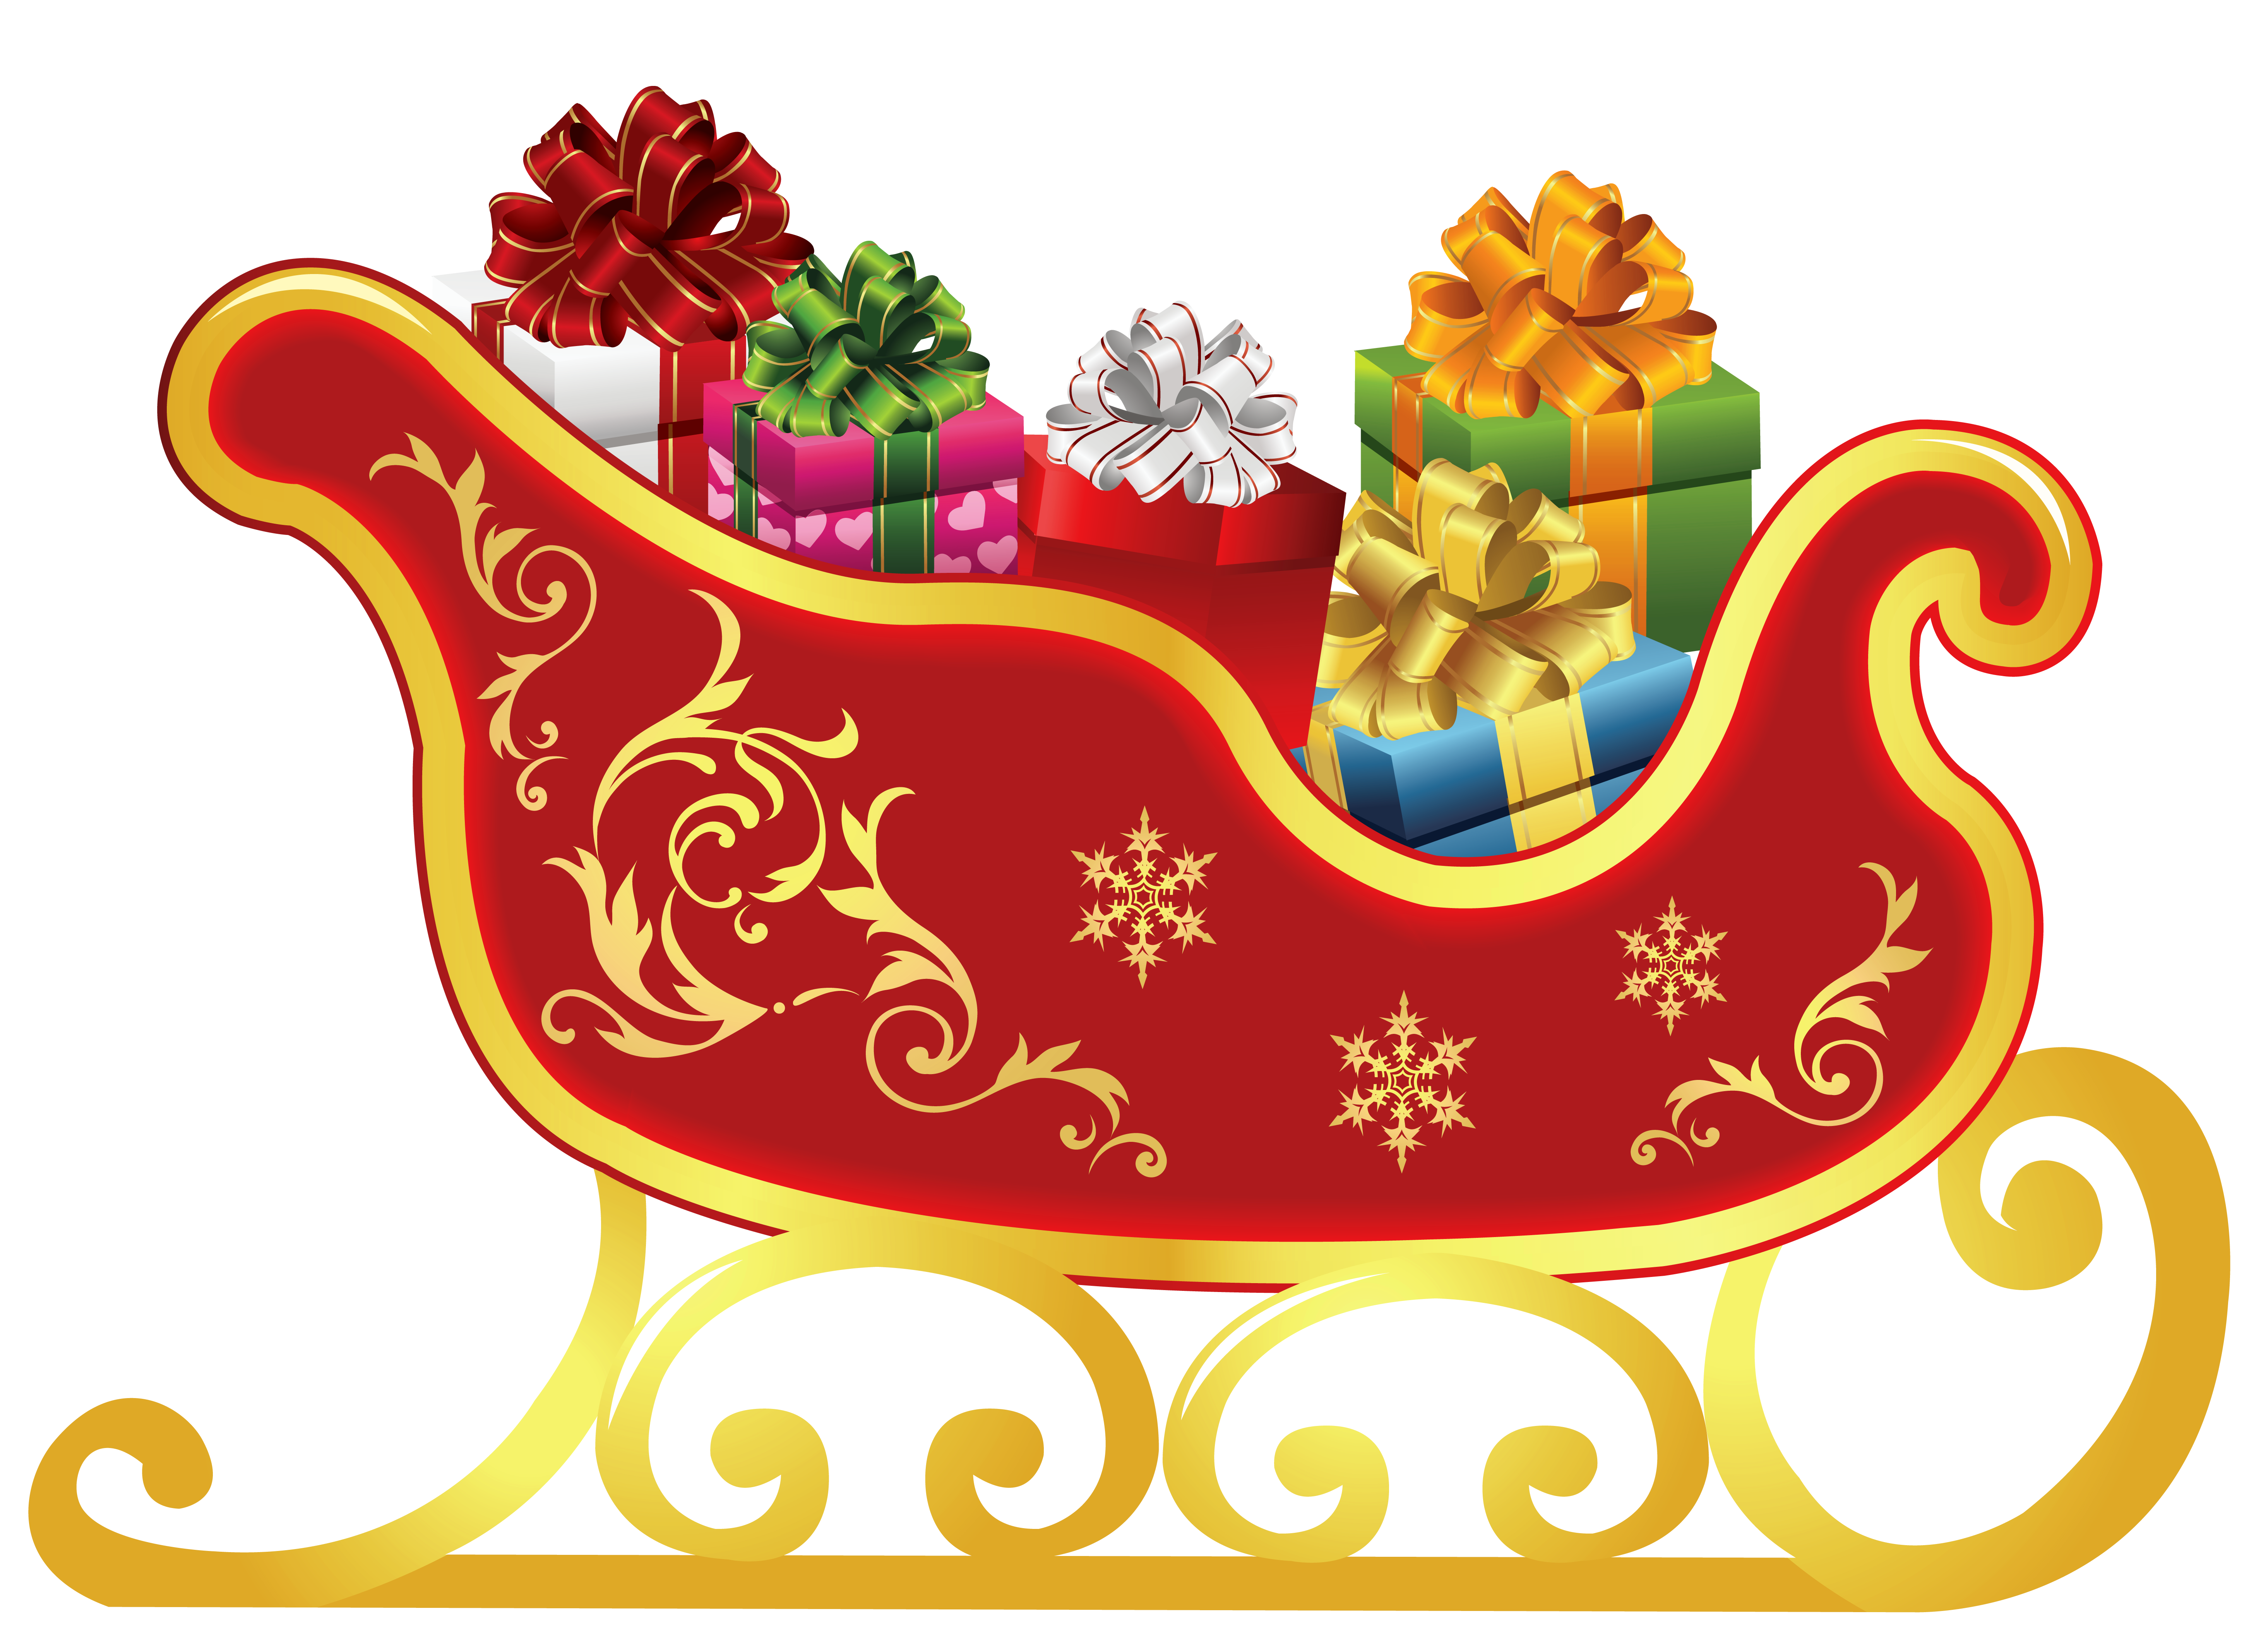 Free clipart sleigh graphic transparent library Free Sleigh Cliparts, Download Free Clip Art, Free Clip Art on ... graphic transparent library